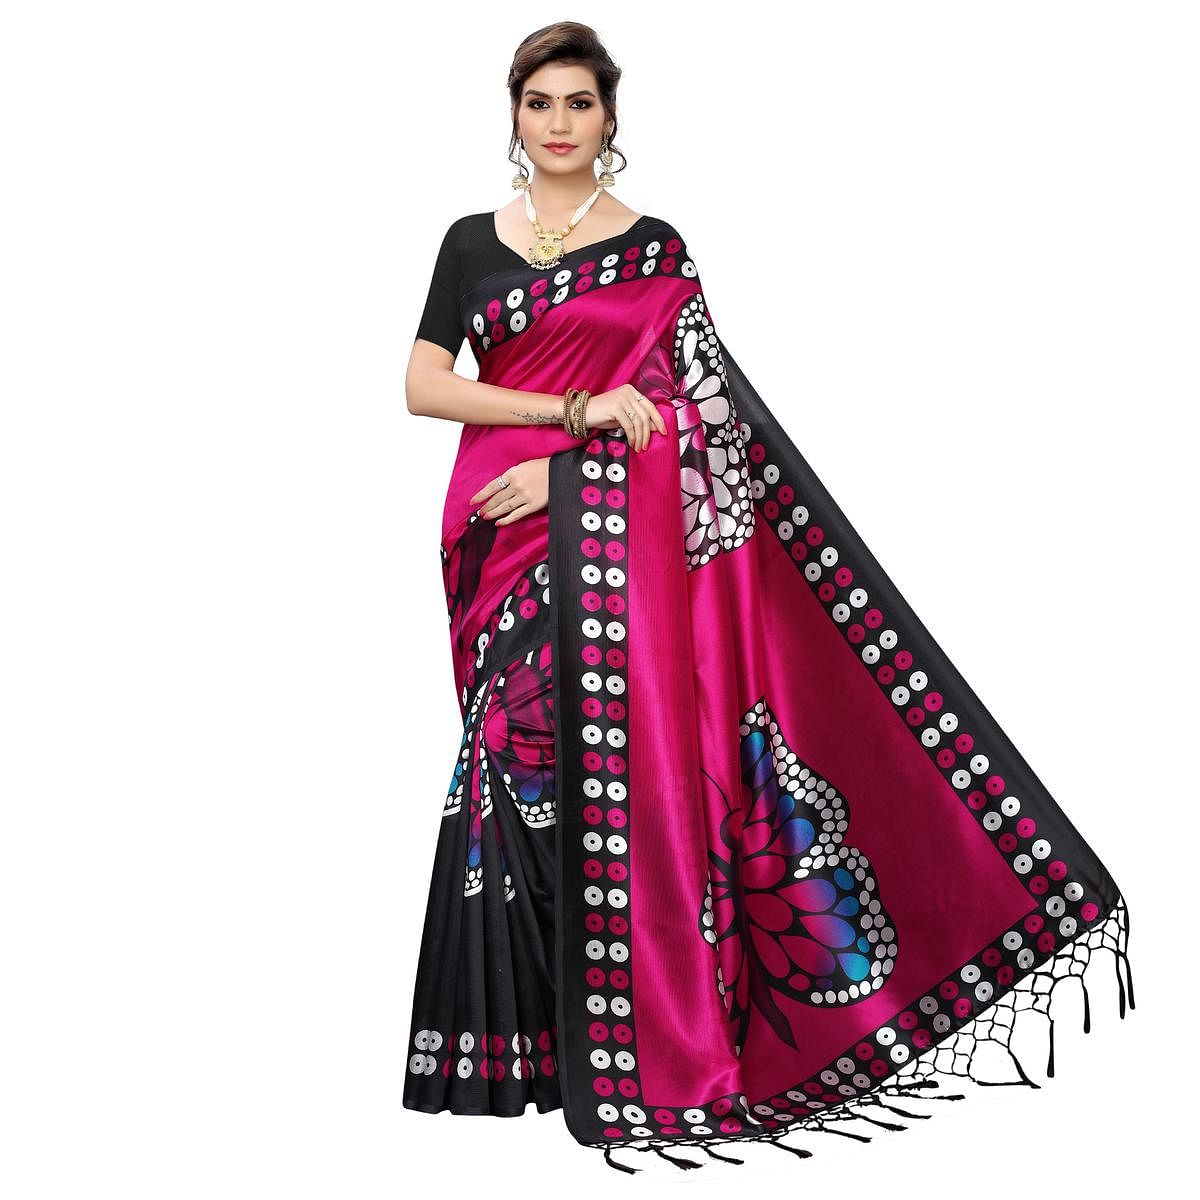 Desirable Black-Pink Colored Festive Wear Butterfly Printed Art Silk Saree With Tassels